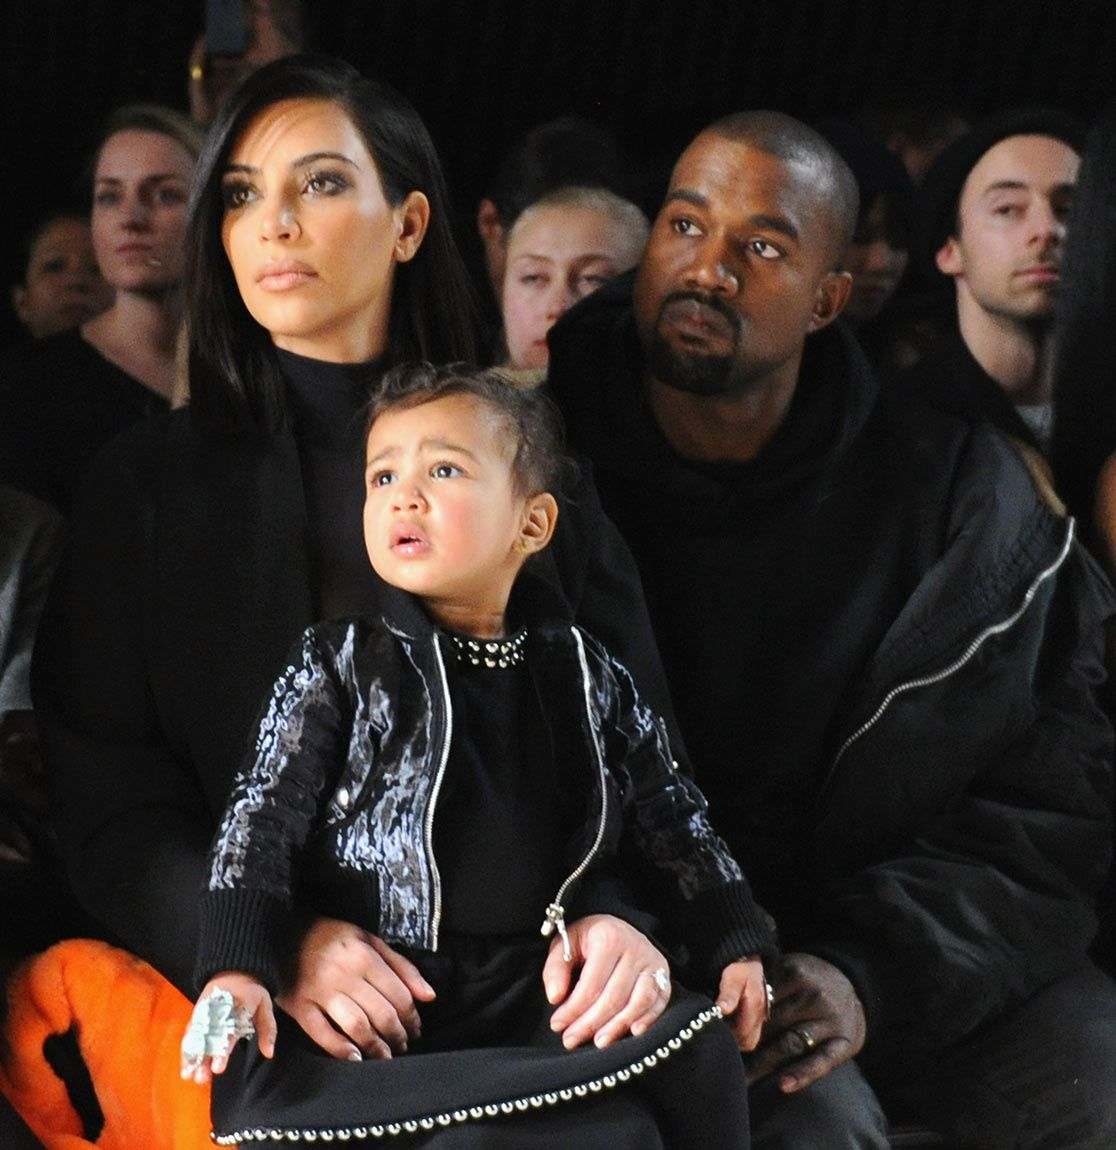 Poor Nori Kimye S Daughter Cries At Nyfw Find Out What Happened Kim Kardashian And North Kim Kardashian And Kanye Kim And Kanye